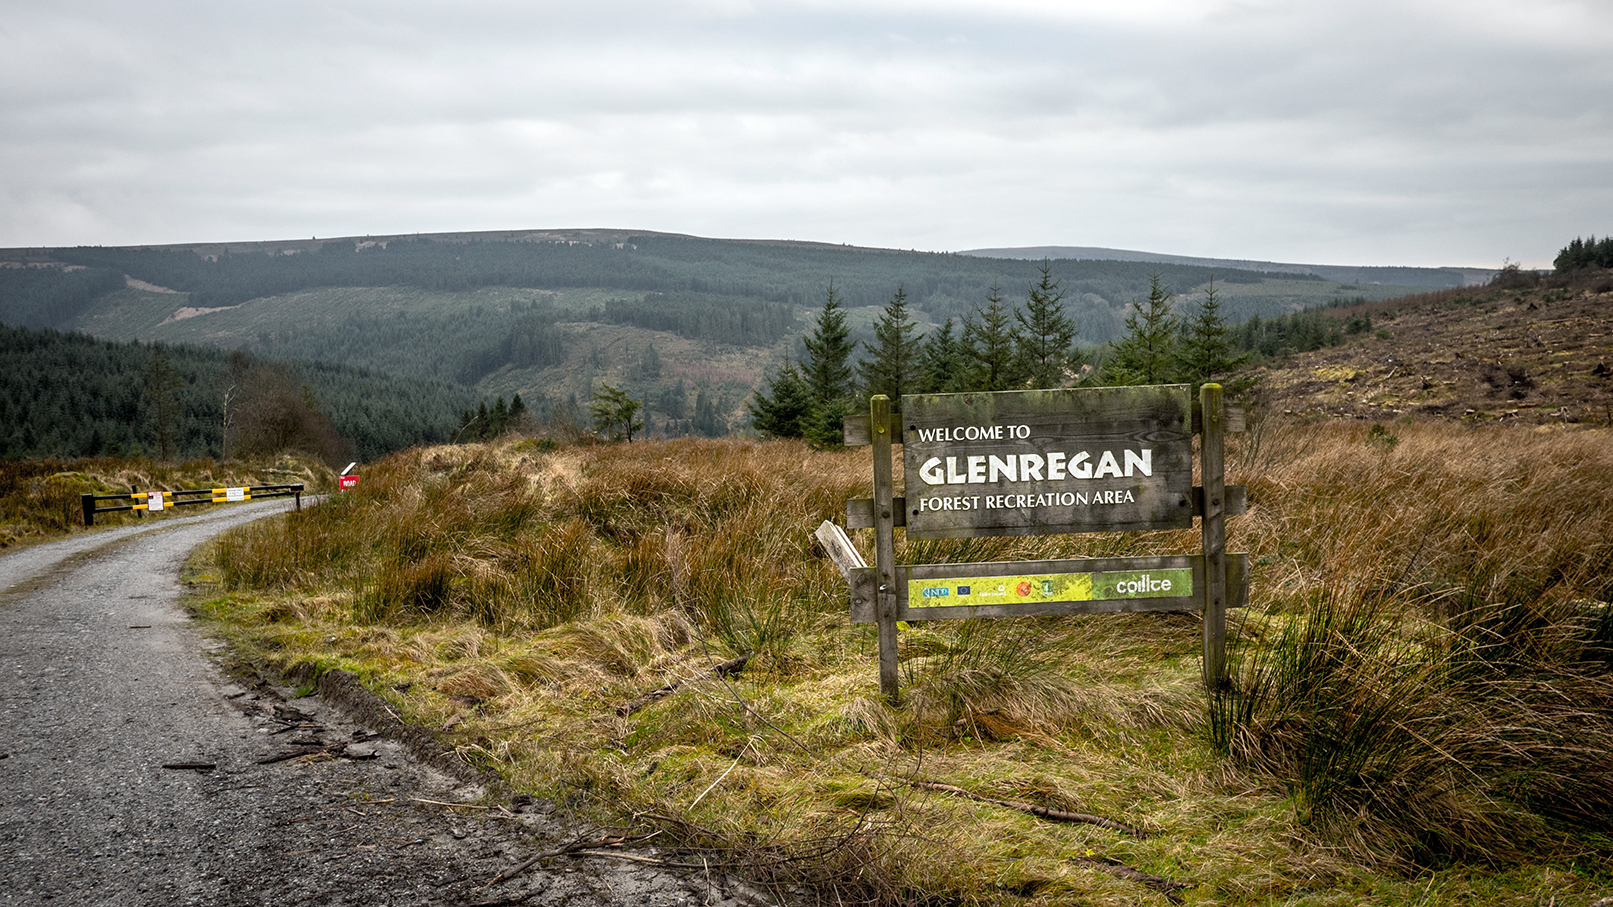 Glenregan forest recreation area